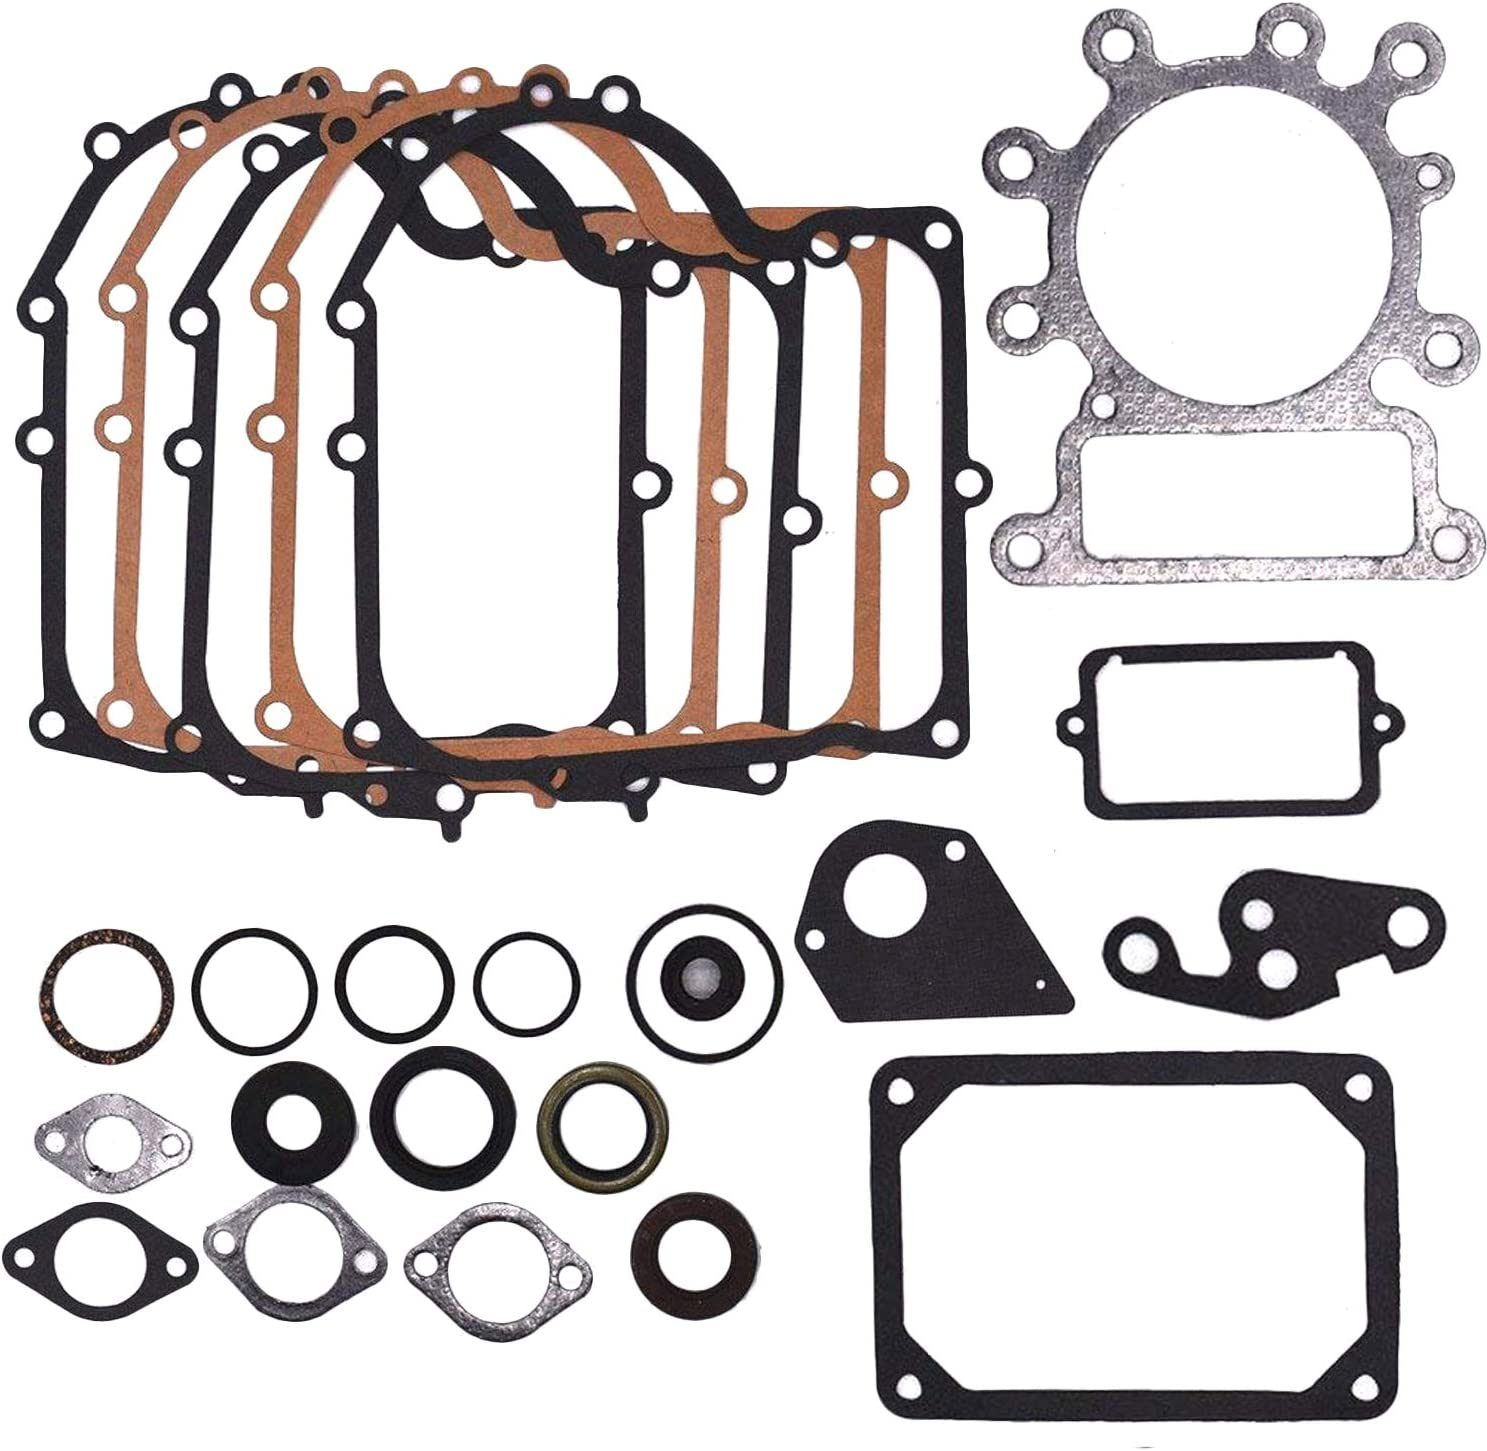 495993 Replacement Gasket Set Replaces # 287707 287777 for Briggs /& Stratton